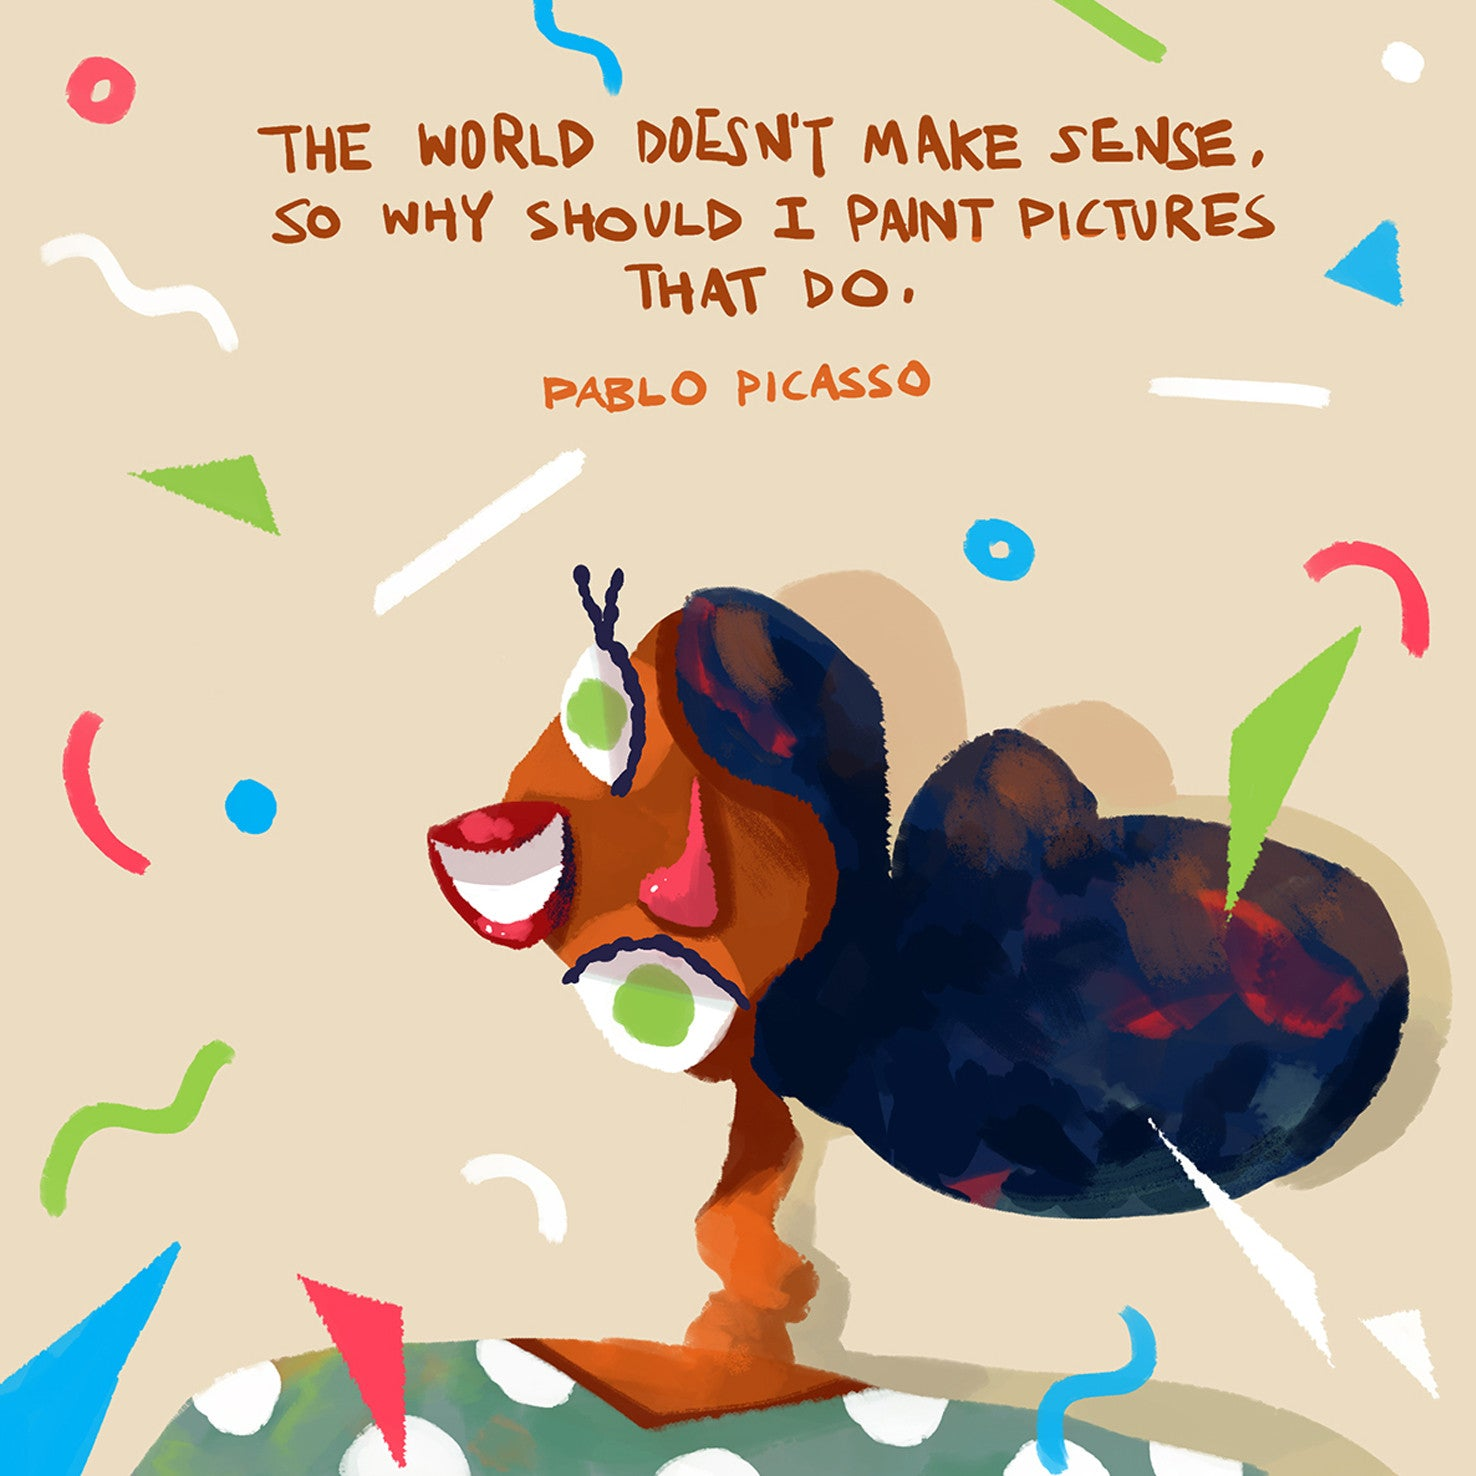 """The World Doesn't Make Sense"" Pablo Picasso x Teressa Ong - 297mm x 297mm Giclée Print"